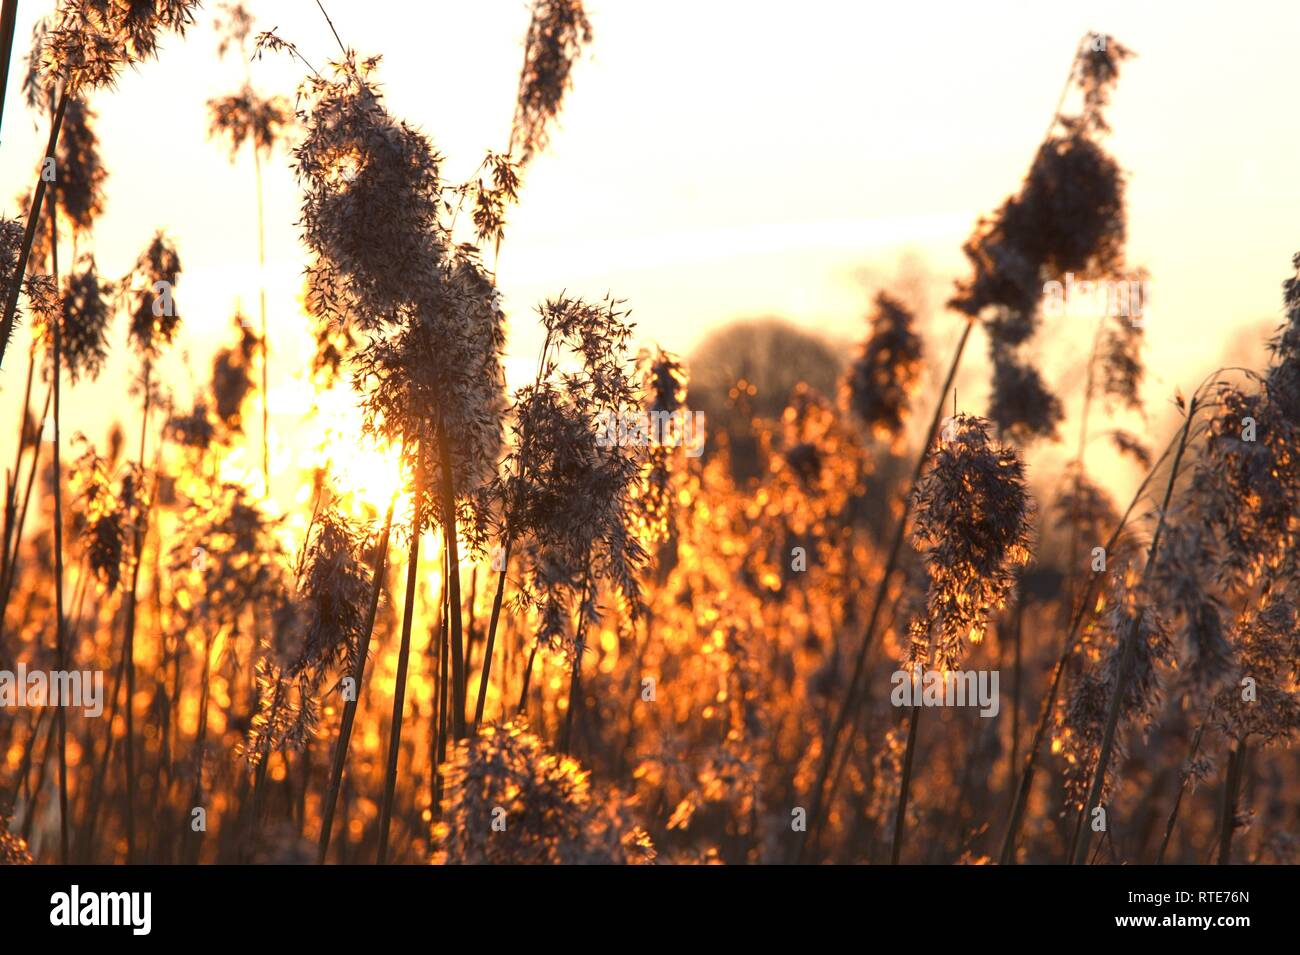 27.02.2019, reeds (Phragwithes) with Ahrchen on a winter evening with a beautiful sunset on the Schlei in Schleswig. Monocotyledons, Commelinids, Order: Sussgrass-type (Poales), Family: Sussgraser (Poaceae), Subfamily: Arundinoideae, Genus: Reed-tubes | usage worldwide - Stock Image